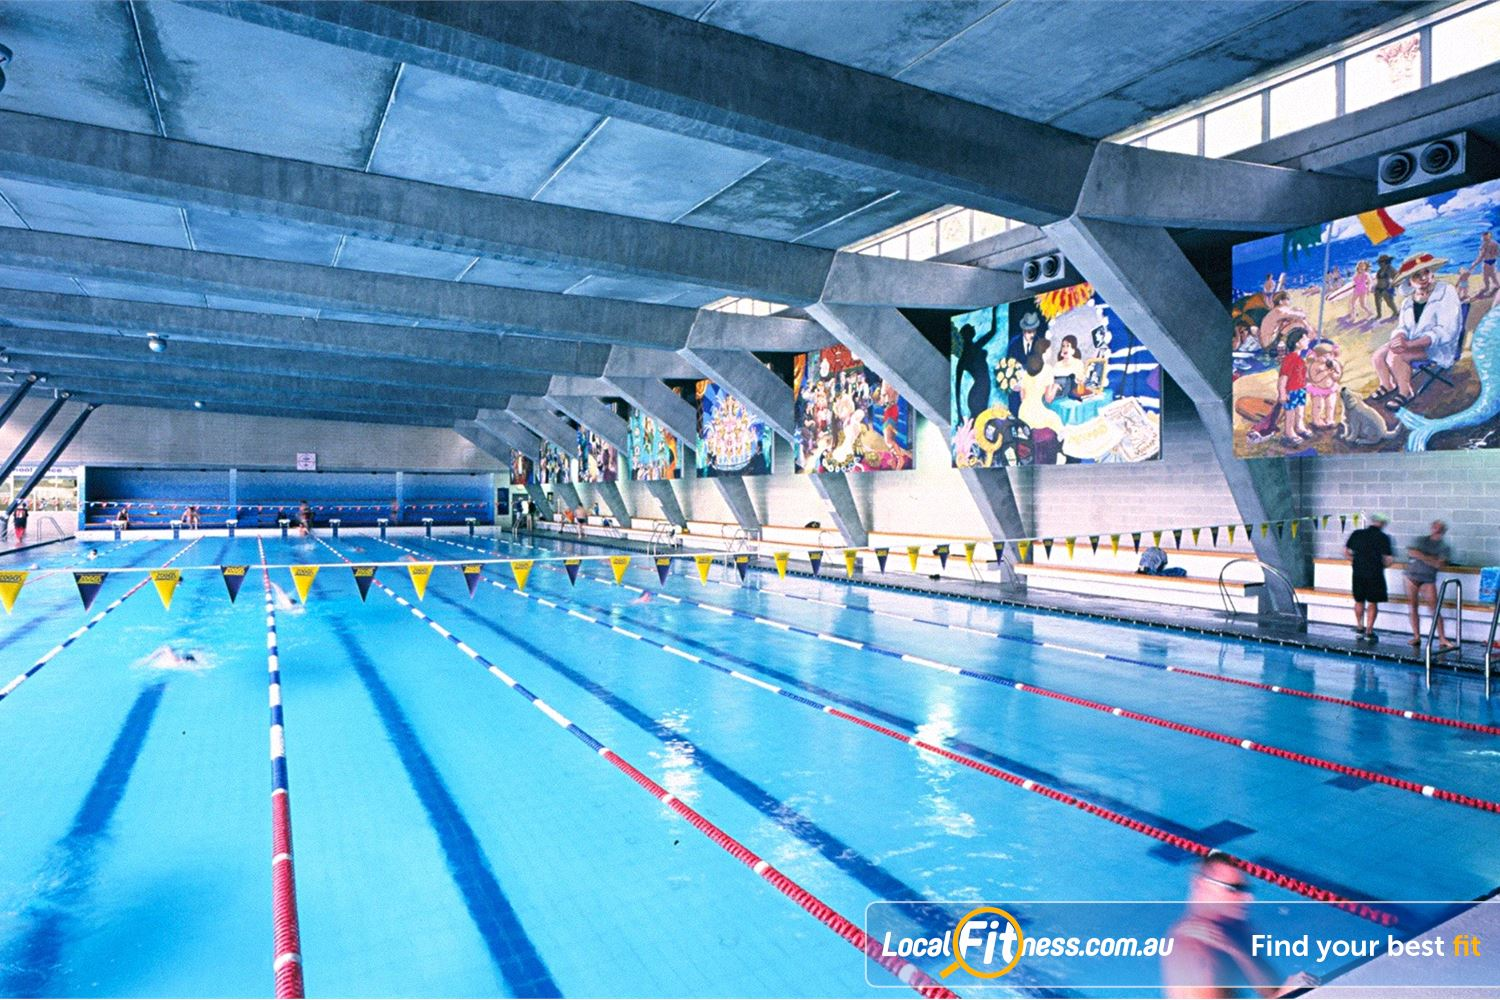 Cook and Phillip Park Aquatic and Fitness Centre Sydney Welcome to our 50m heated indoor Sydney swimming pool.